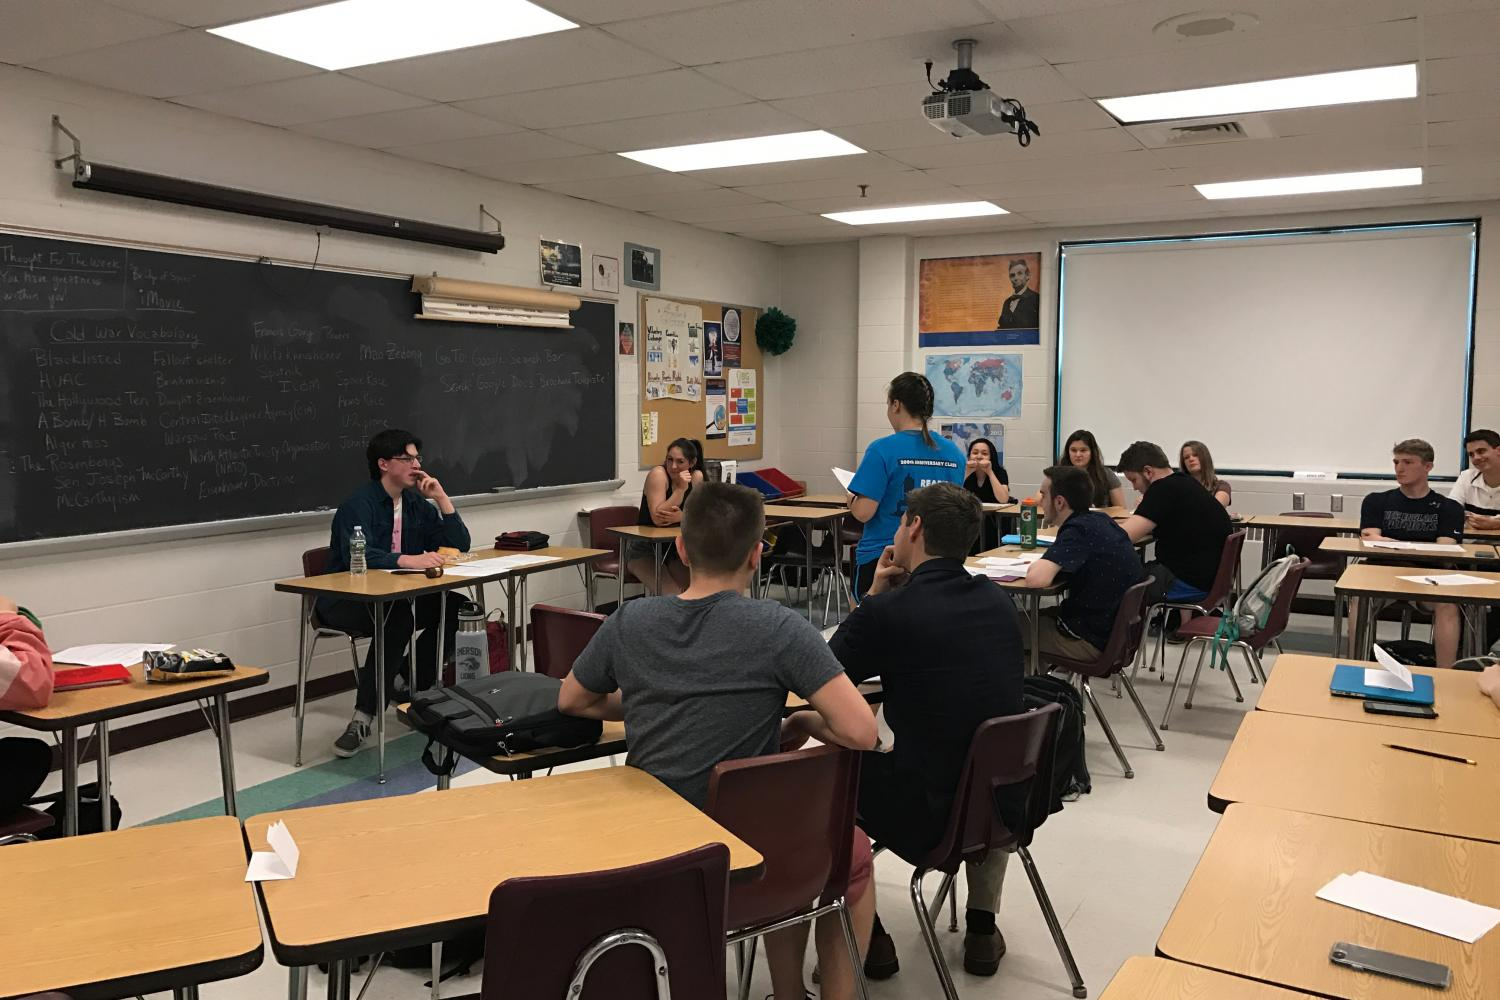 HB+Legal+Studies+students+gather+together+for+a+mock+trial.+The+fourth+period+class+is+taught+by+Mrs.+Kirby.